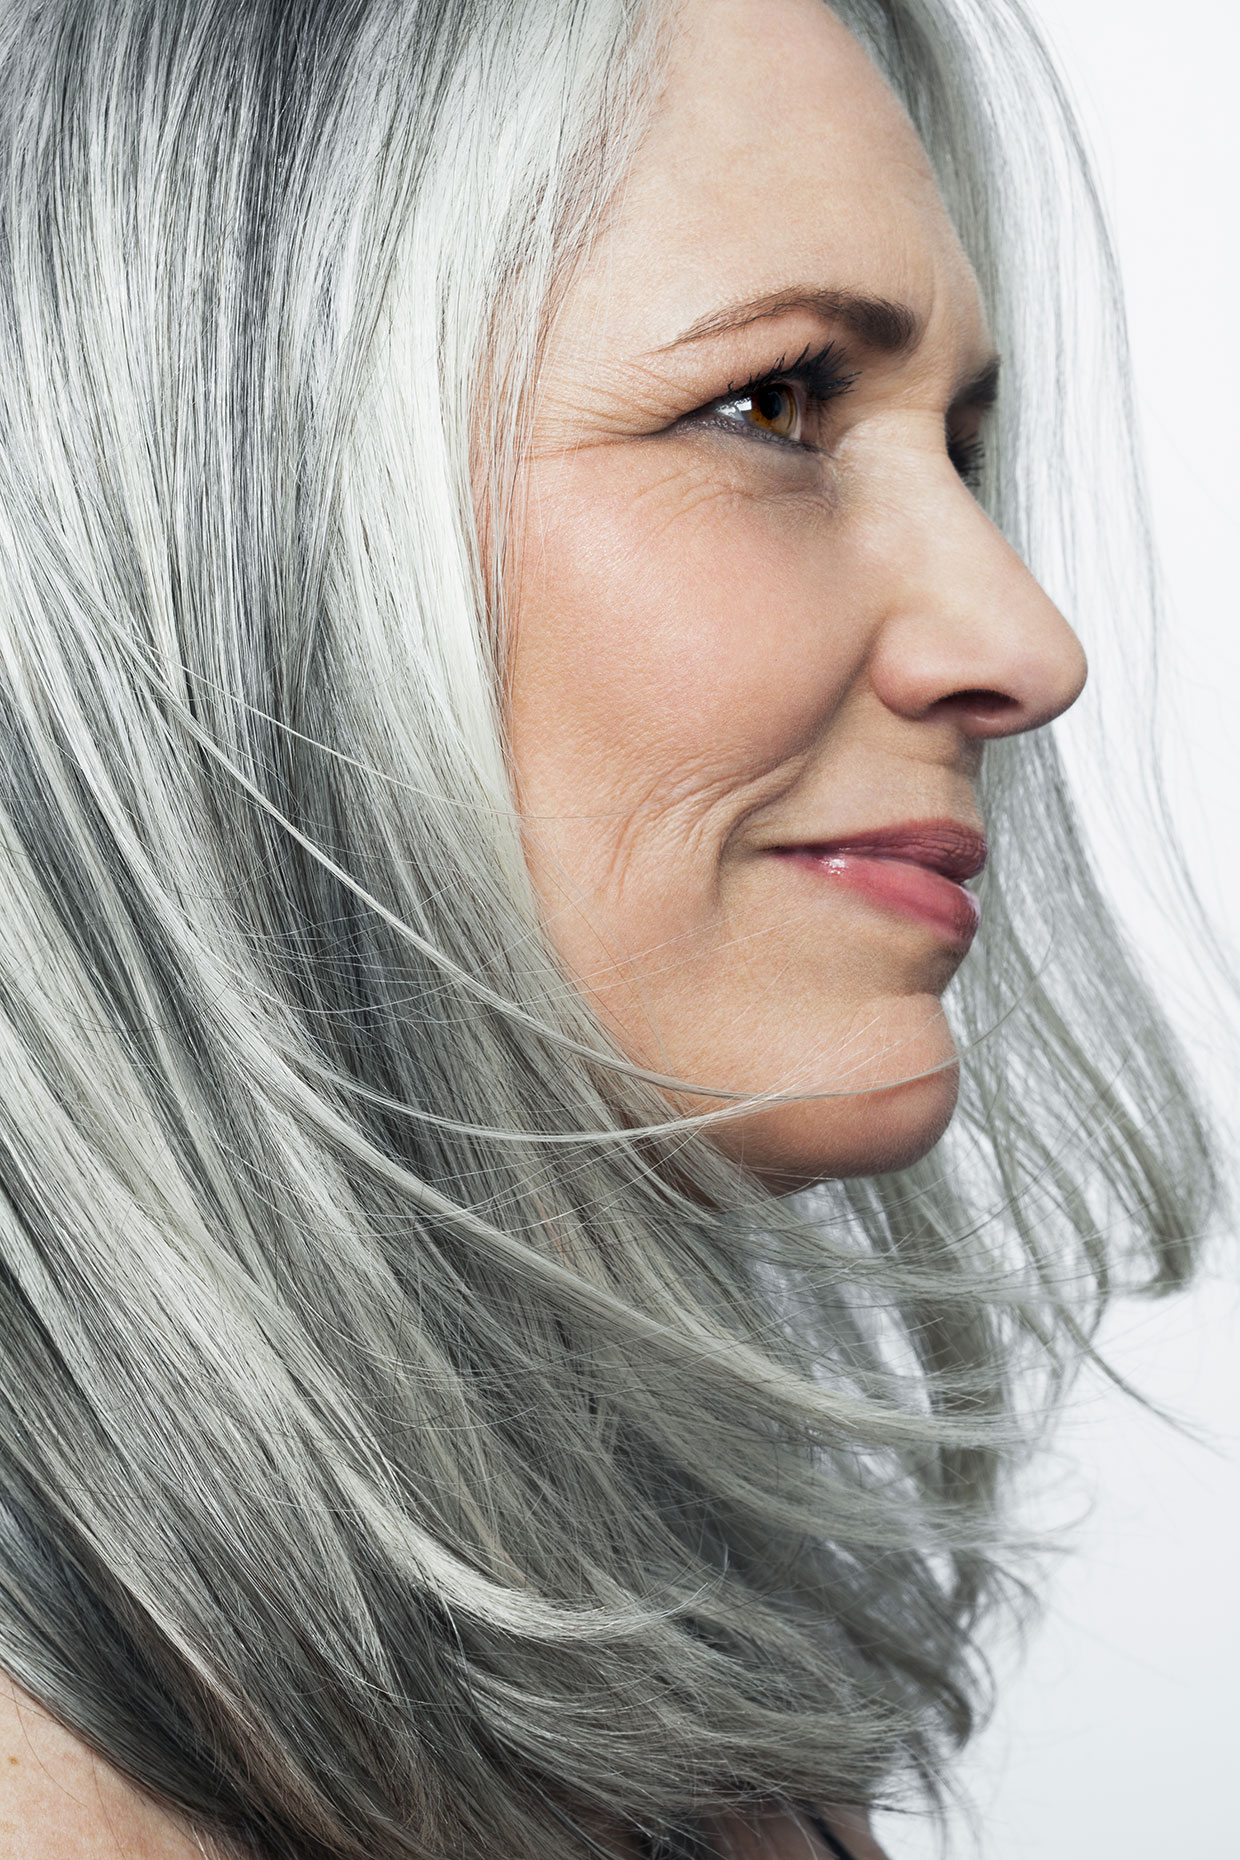 Grey haired woman with a soft smile, profile.